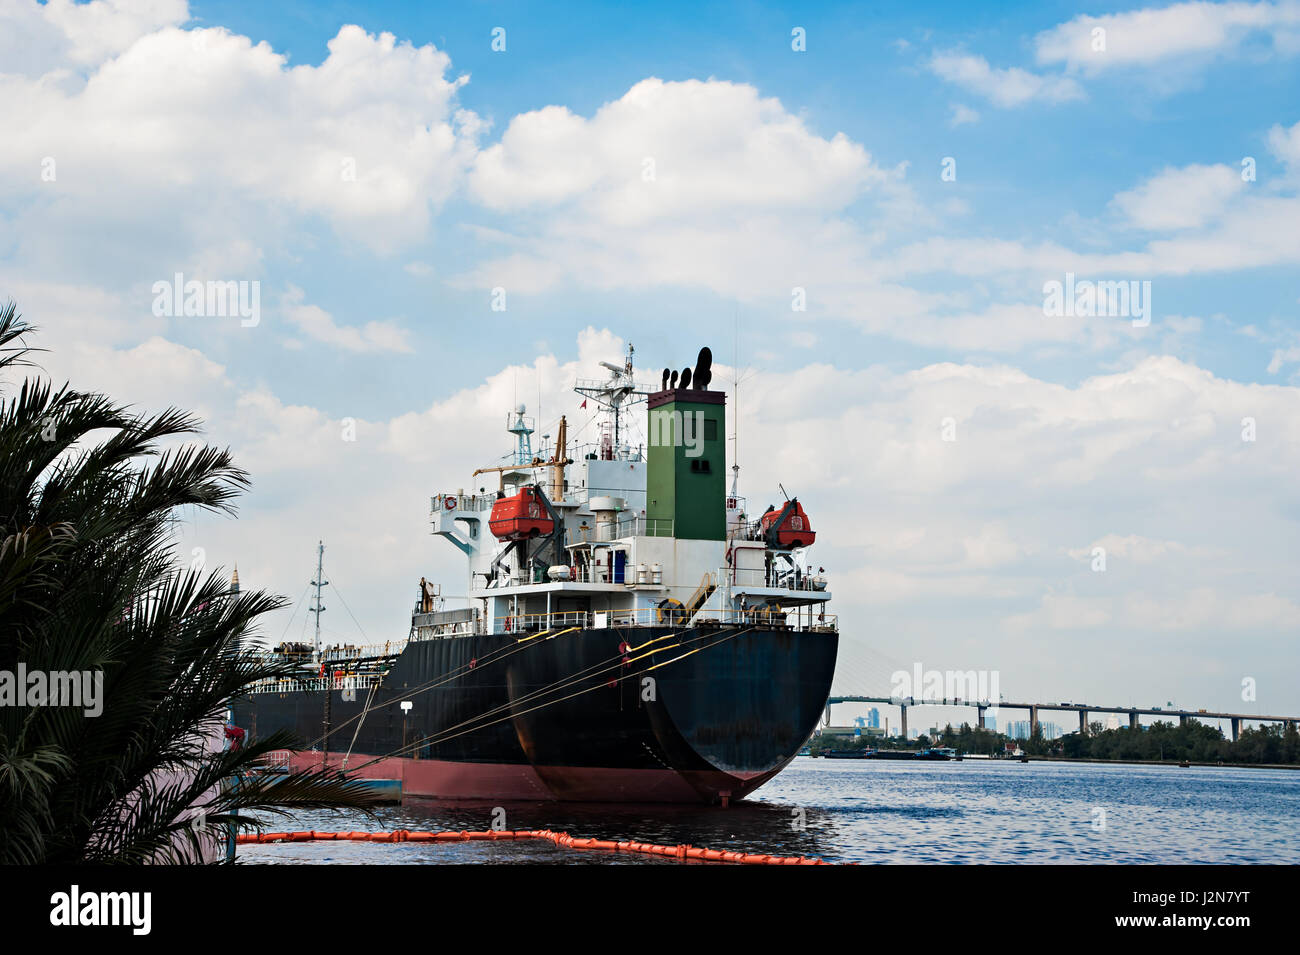 Logistic concept, black Ship parked in the river. Waiting to dock and load the goods. - Stock Image